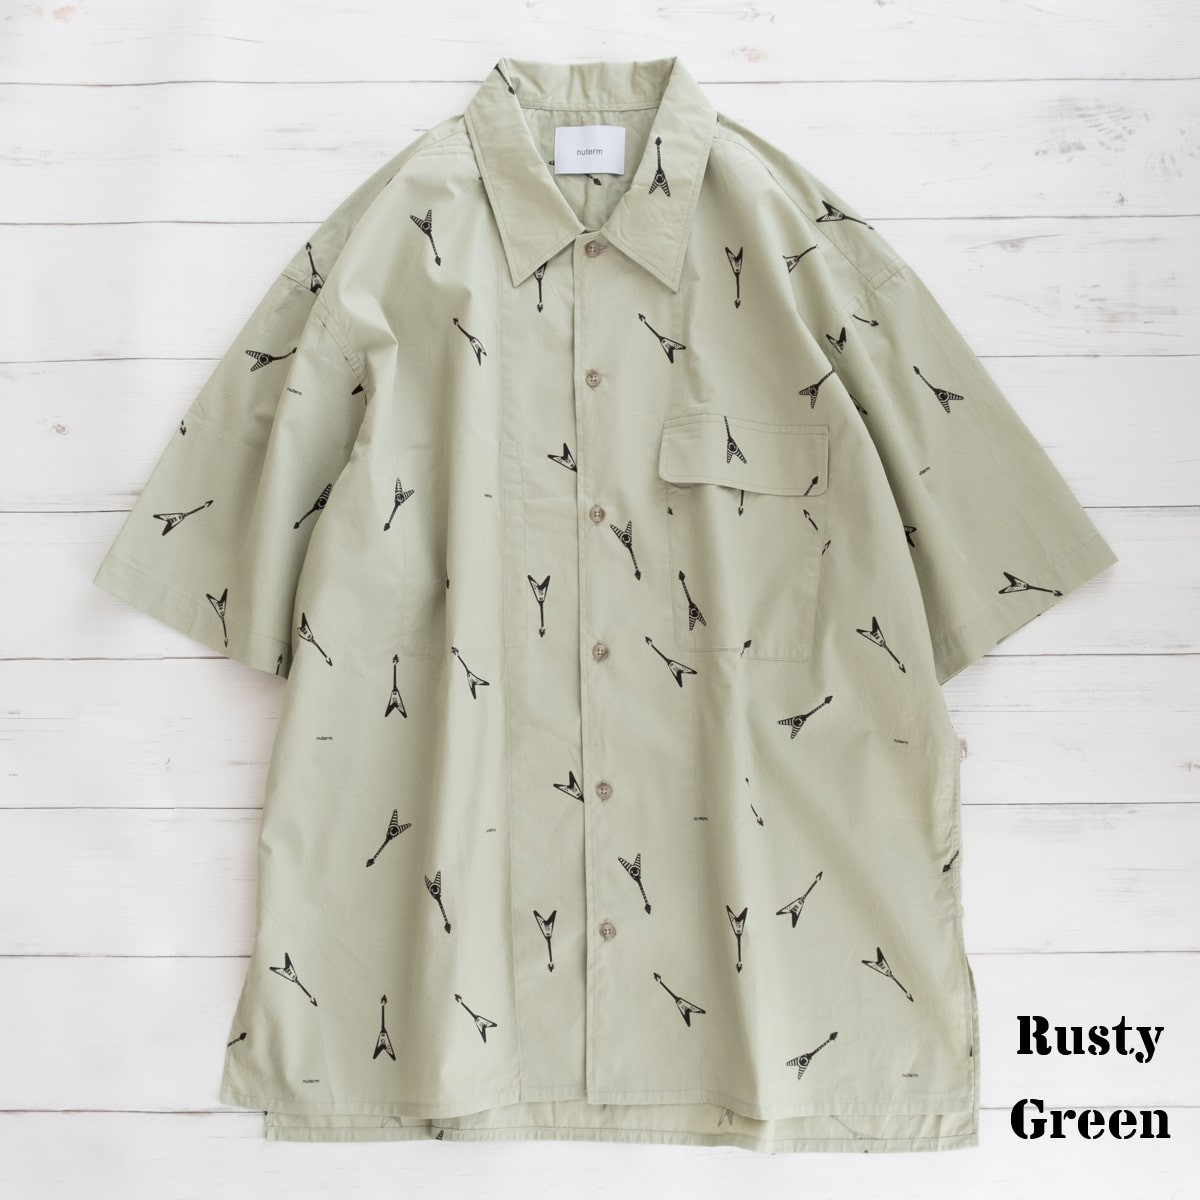 nuterm Printed Work Shirts (2色 Rusty Green/Steel Gray) nut008SH-020S ニューターム プリント ワークシャツ エレキギター ビッグシルエット シャツ 日本製 メンズ 送料無料